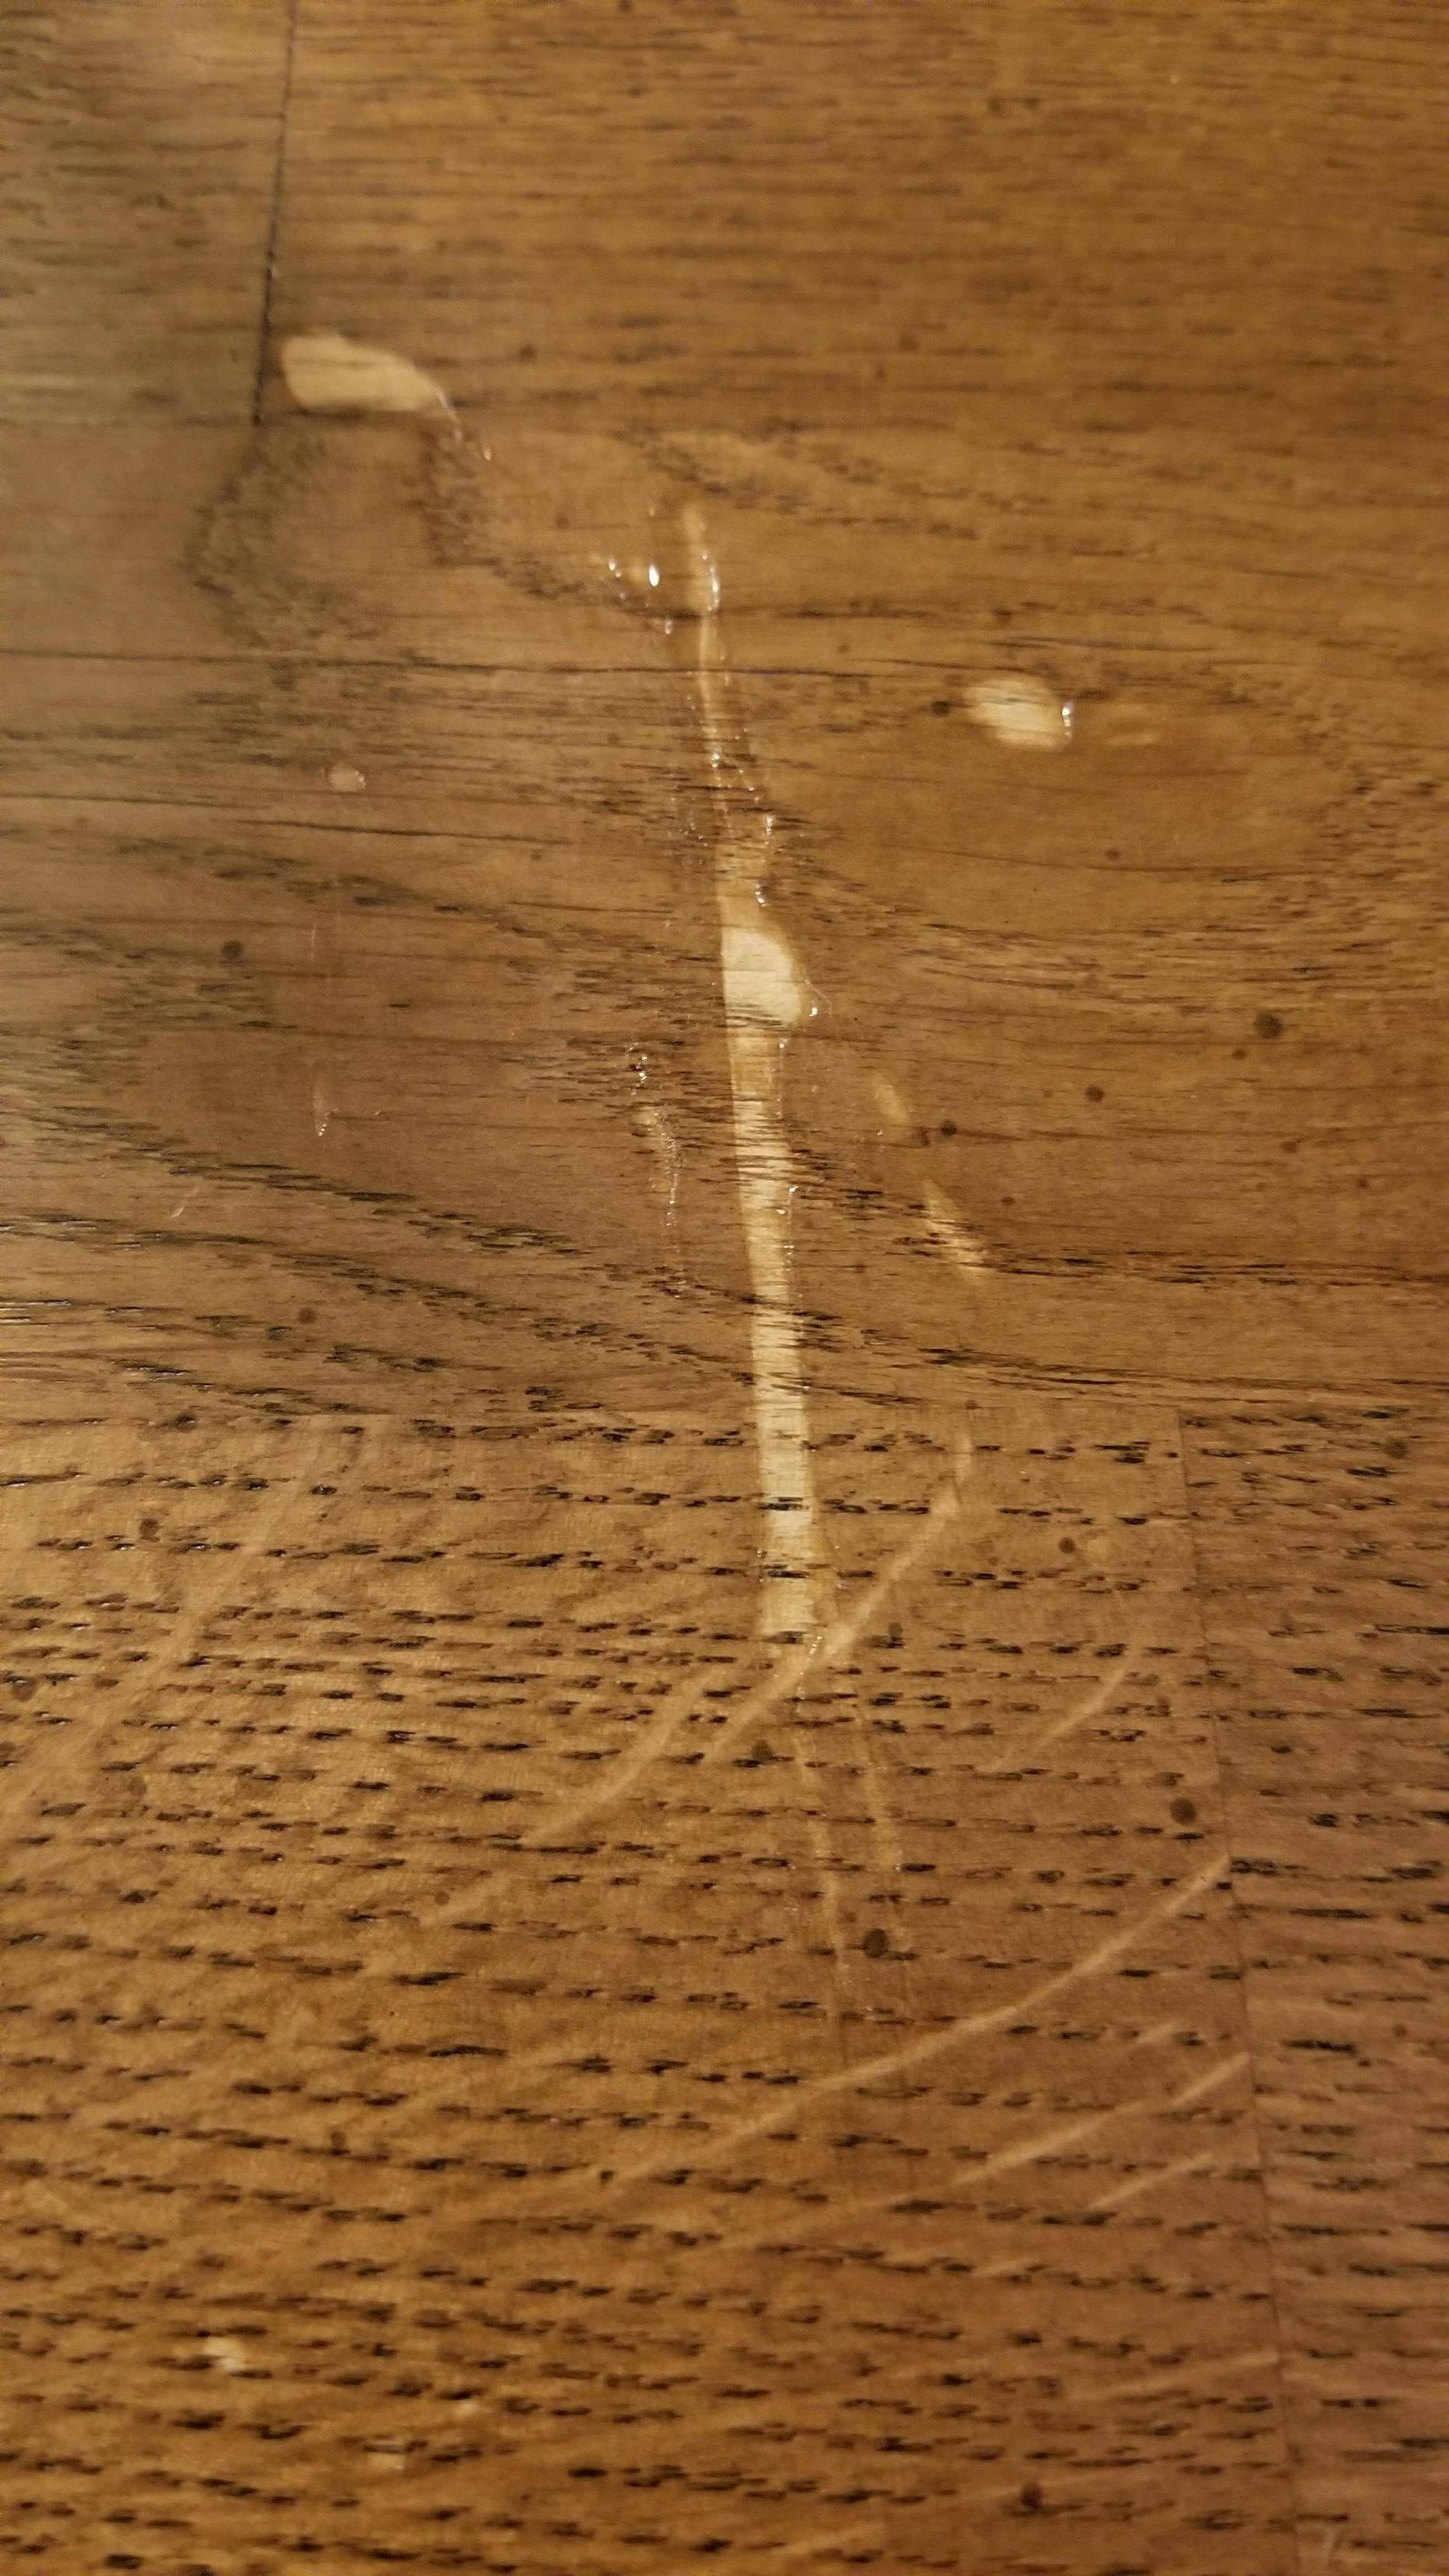 staining  Stain not adhering to wood  Woodworking Stack